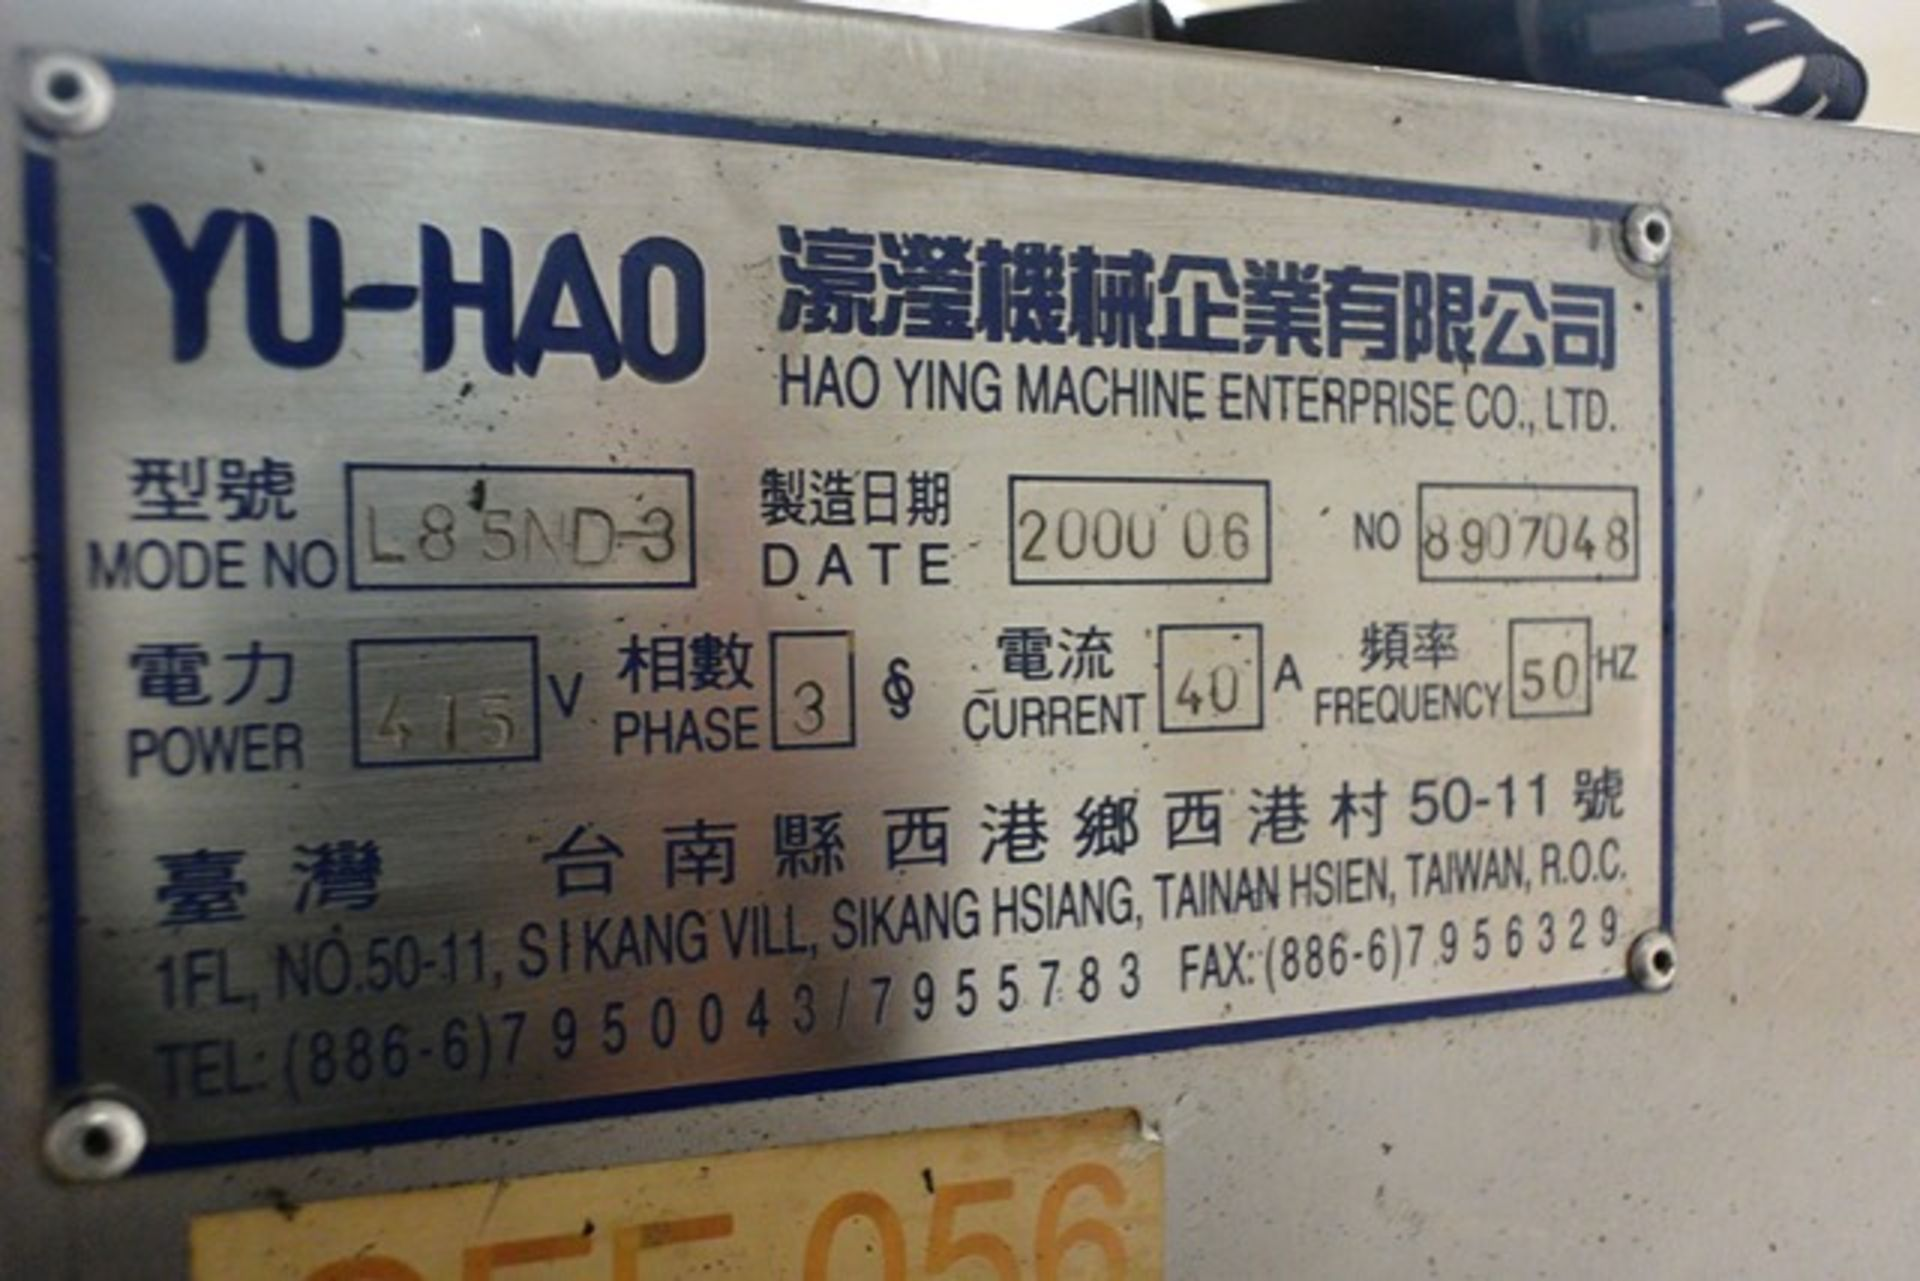 Yo-Hau stainless steel filling machine, type L85ND3, with mould preheat and 4-door/twin side chiller - Image 9 of 9